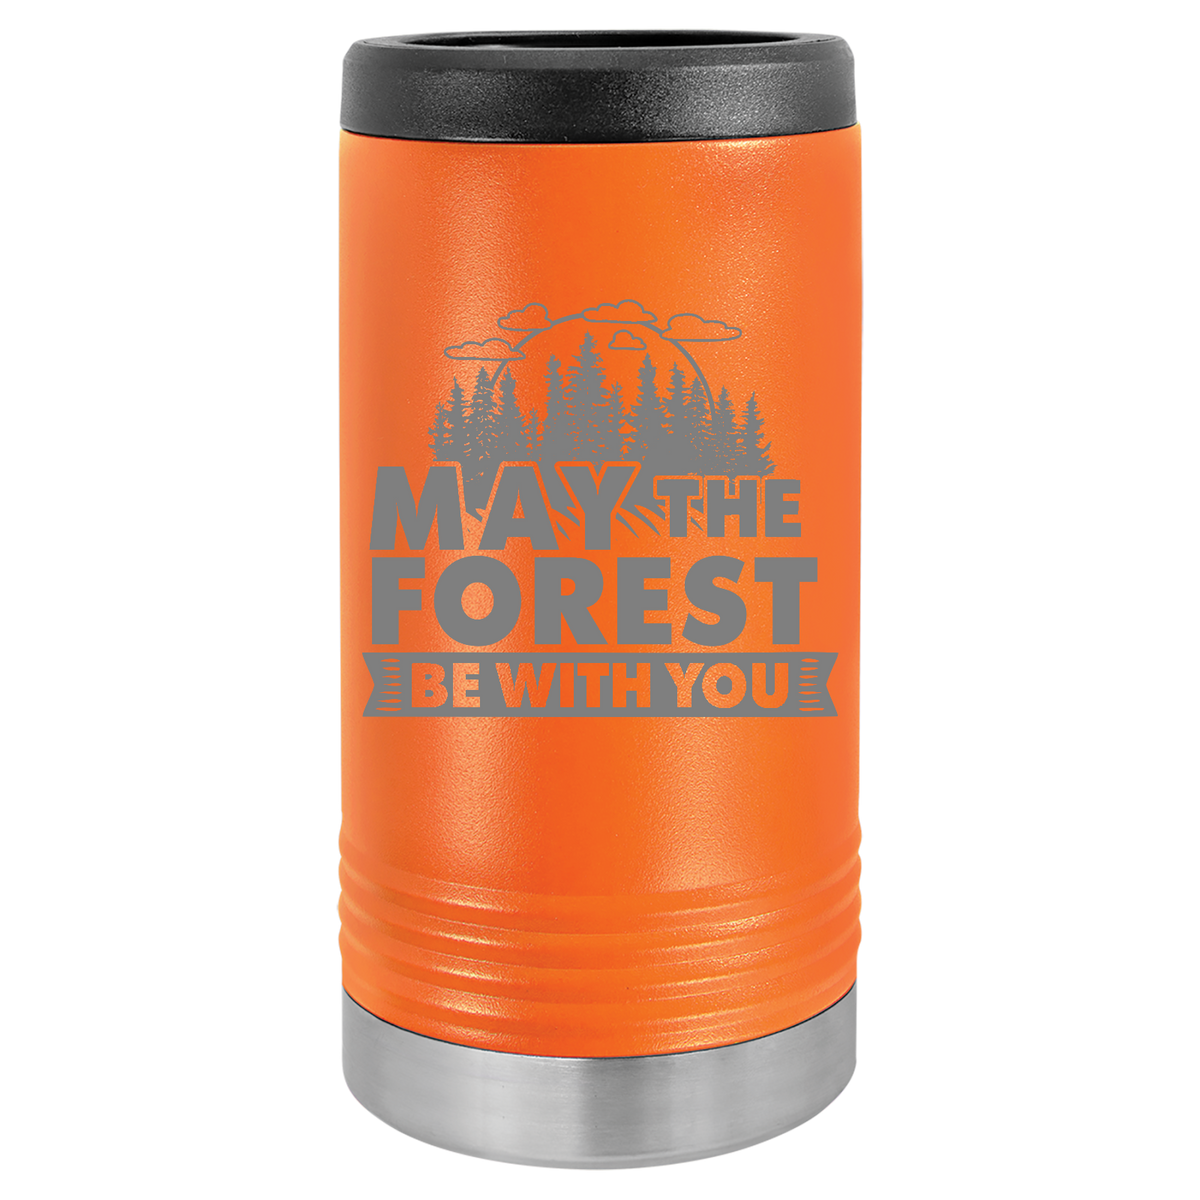 May the forest be with you - Engraved Slim Beverage Holder